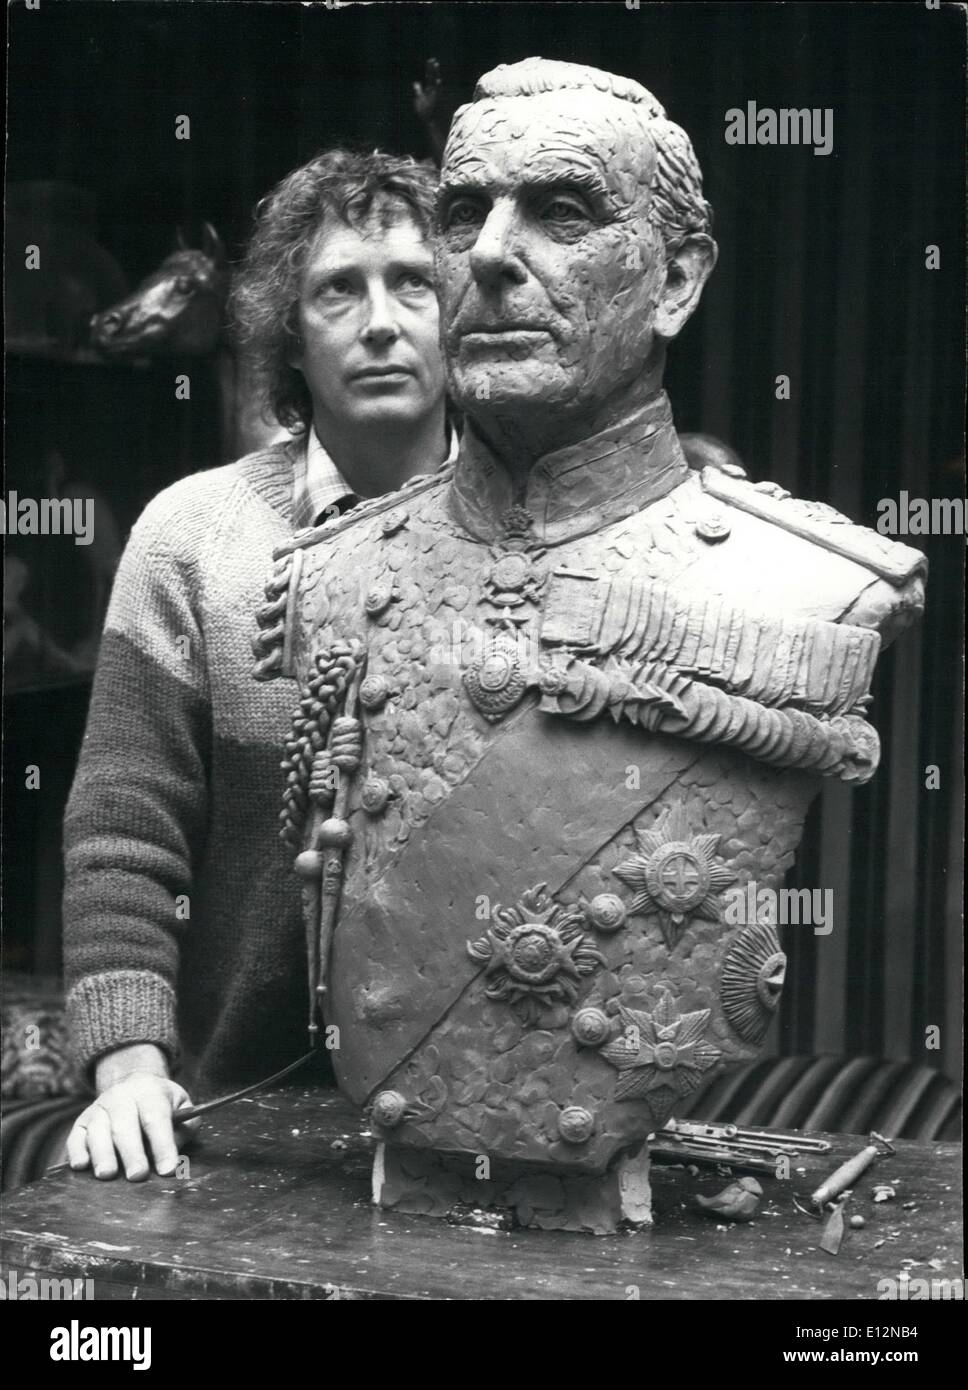 Feb. 24, 2012 - Lord Louis takes shape in Bronze. The late Lord Mountbatten is to have his features immortalized Stock Photo